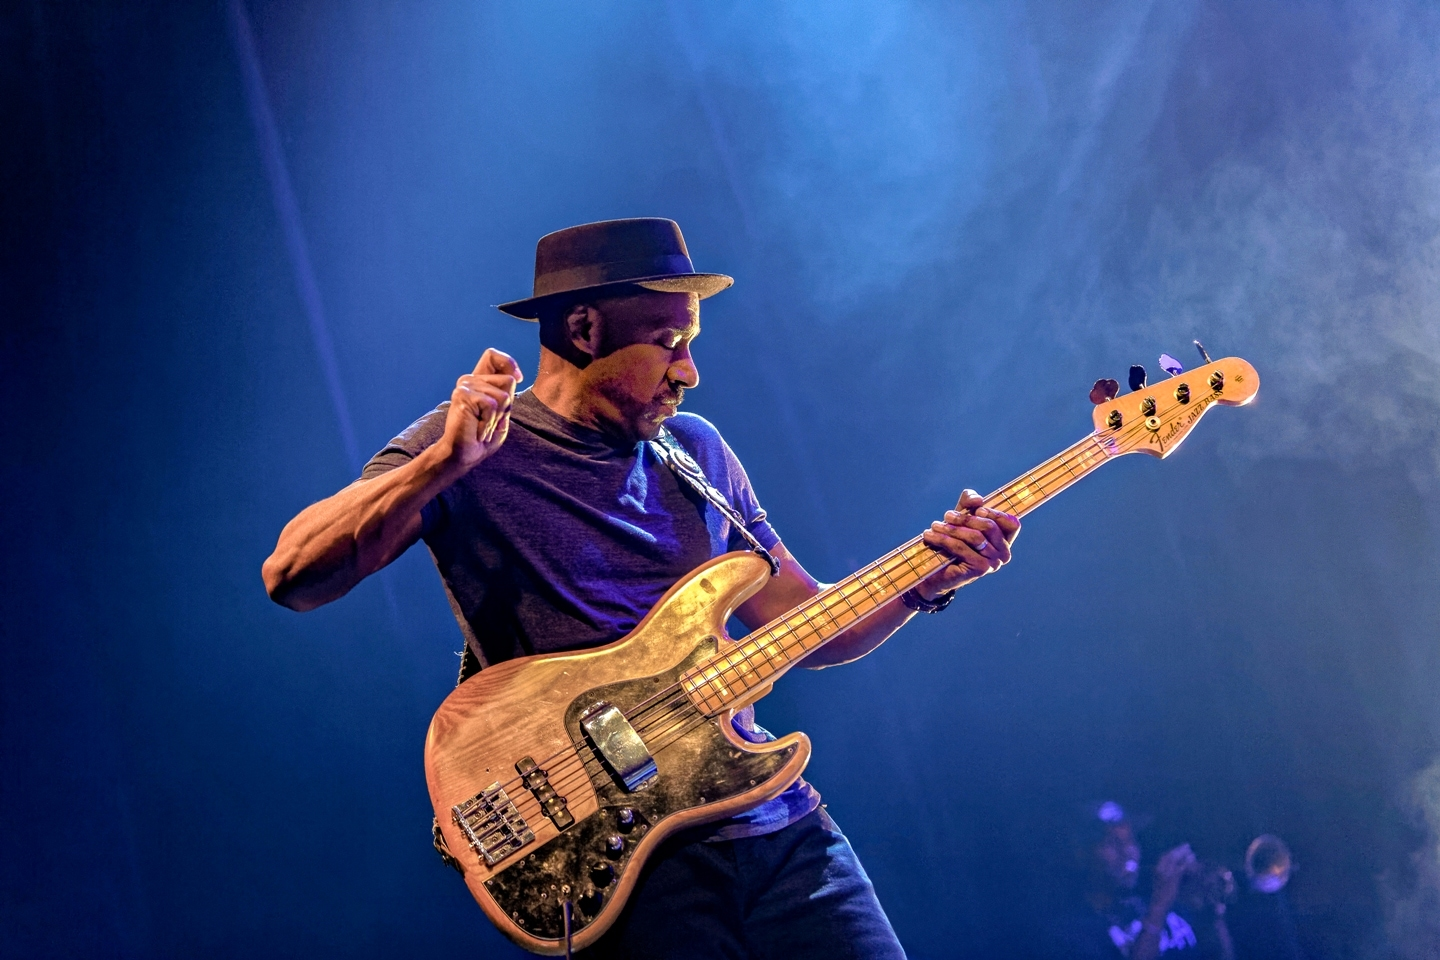 Marcus Miller_02 - credits Thierry Dubuc-2